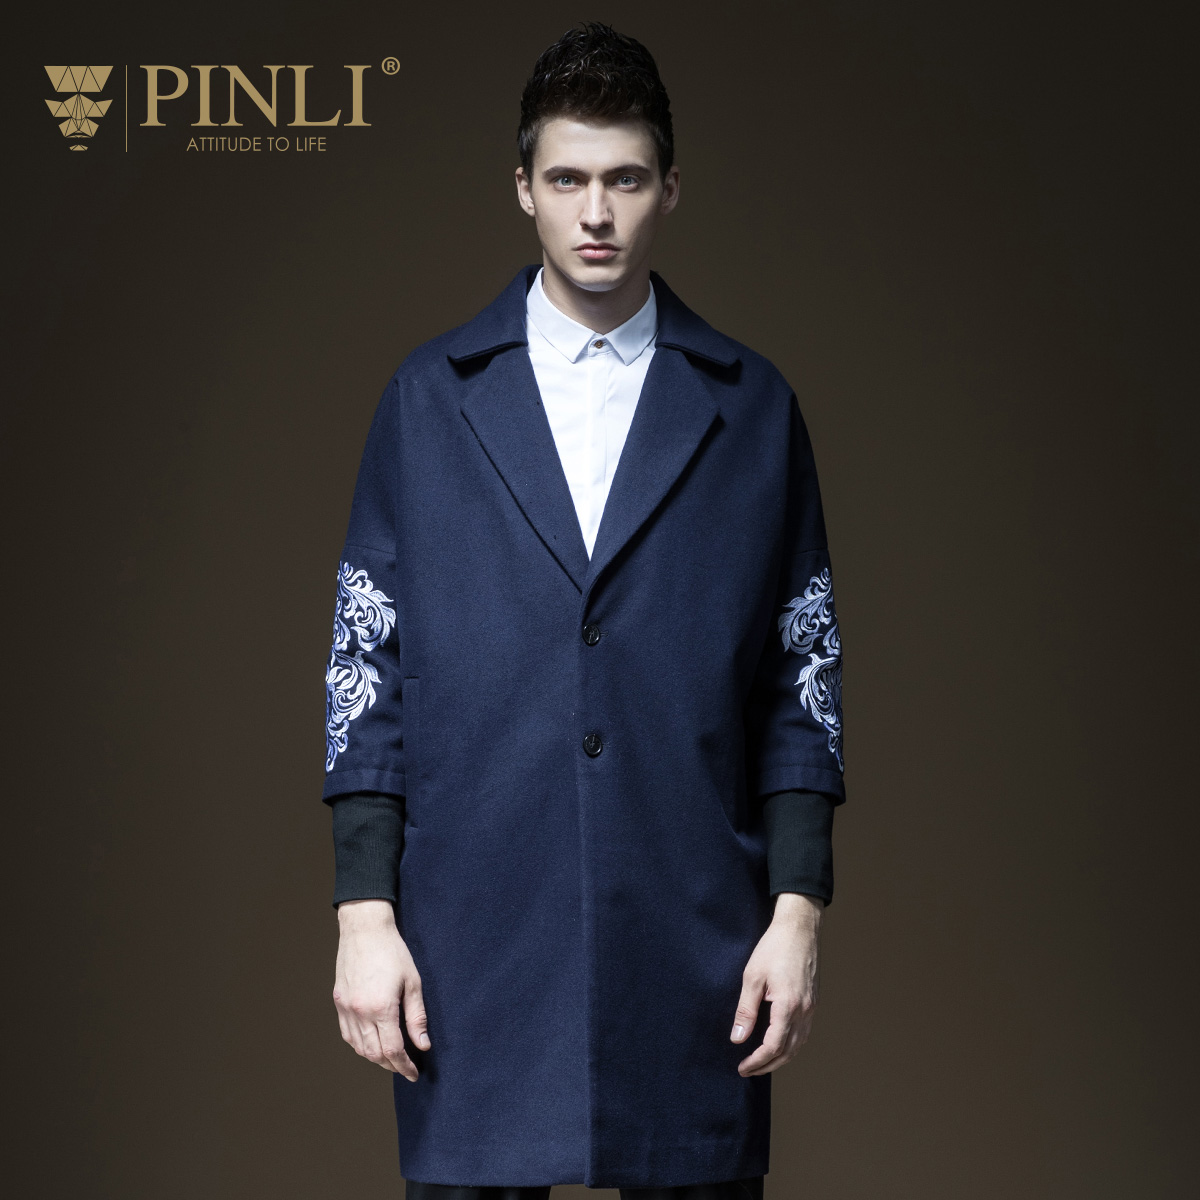 2019 100% Wool Solid Offer 100% Wool Liner Single Breasted Half Palto Pinli New Autumn Men's Embroidered Long Coat B173402427